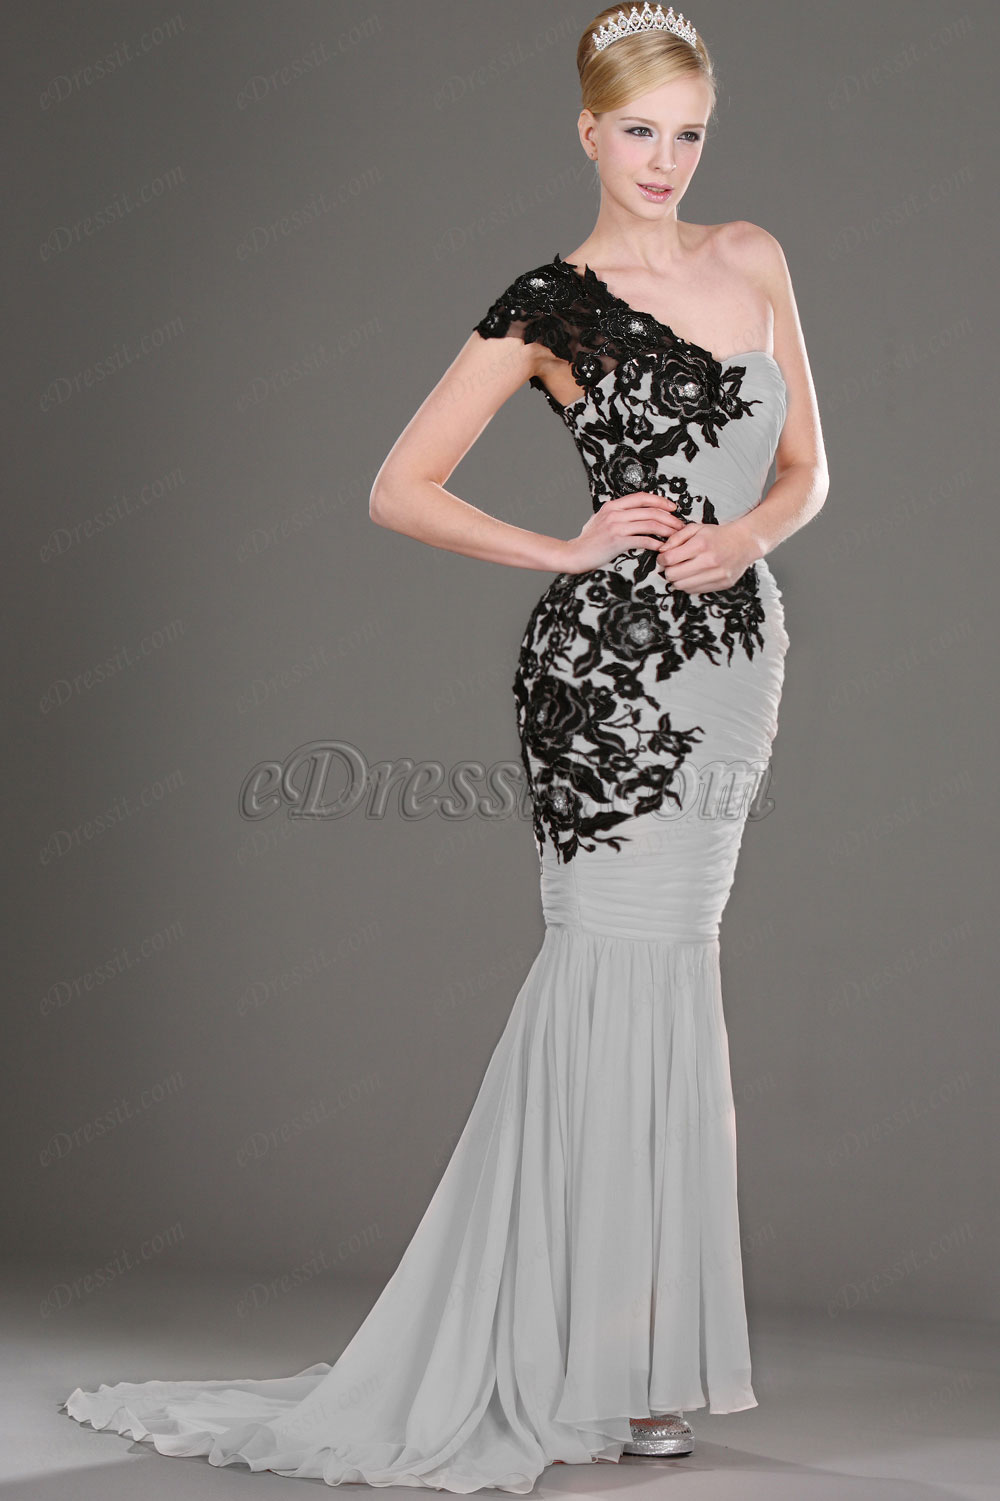 Clearance Sale! eDressit Gray Evening Dress Black Laces--Size UK20 (00106001b)